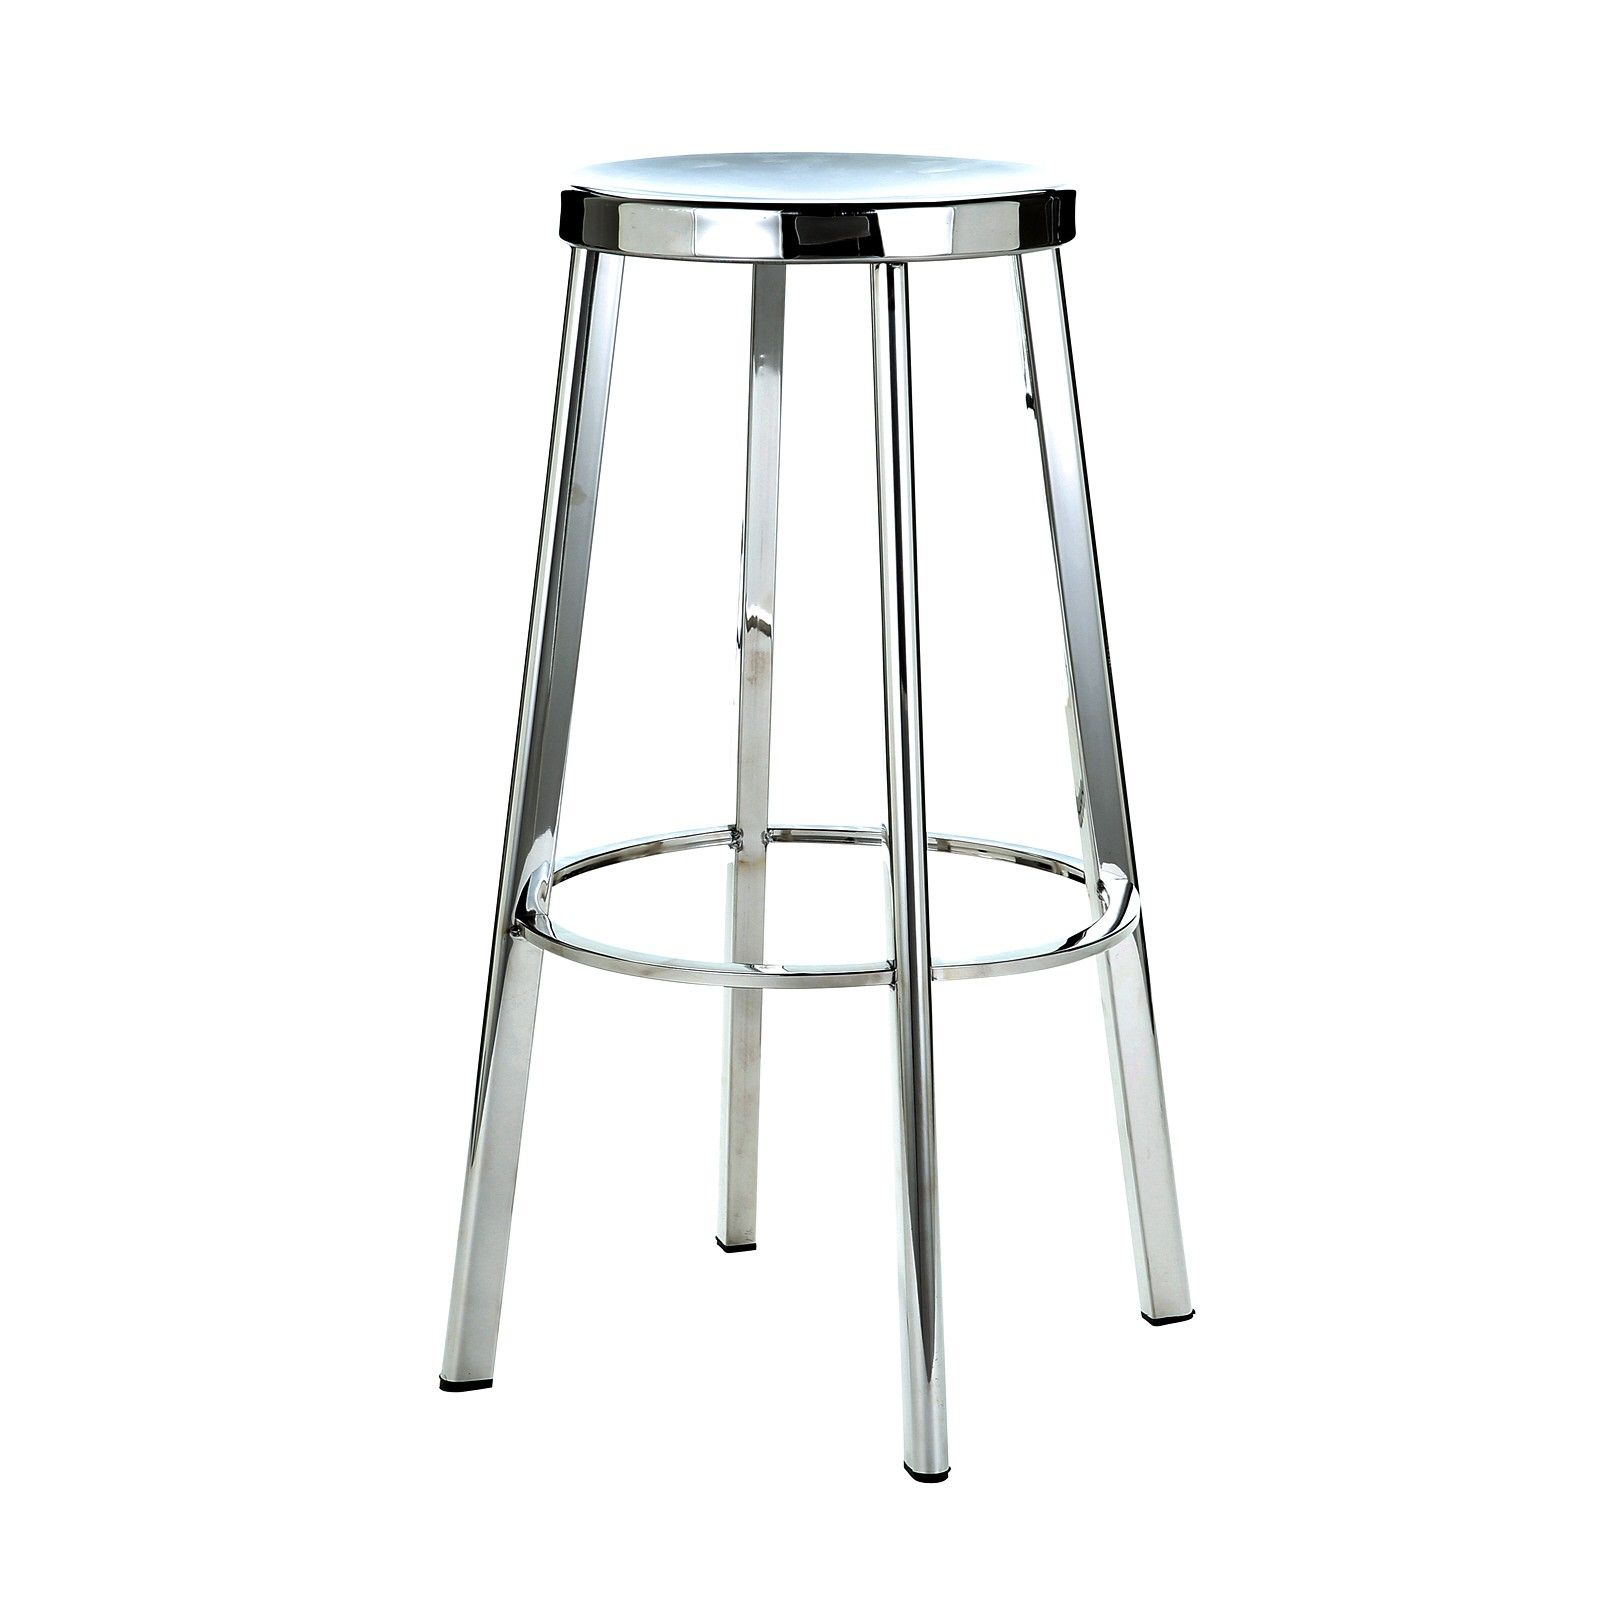 Stainless Bar Stools Polished And Brushed Stainless Steel Sassy 45cm Stools Bar